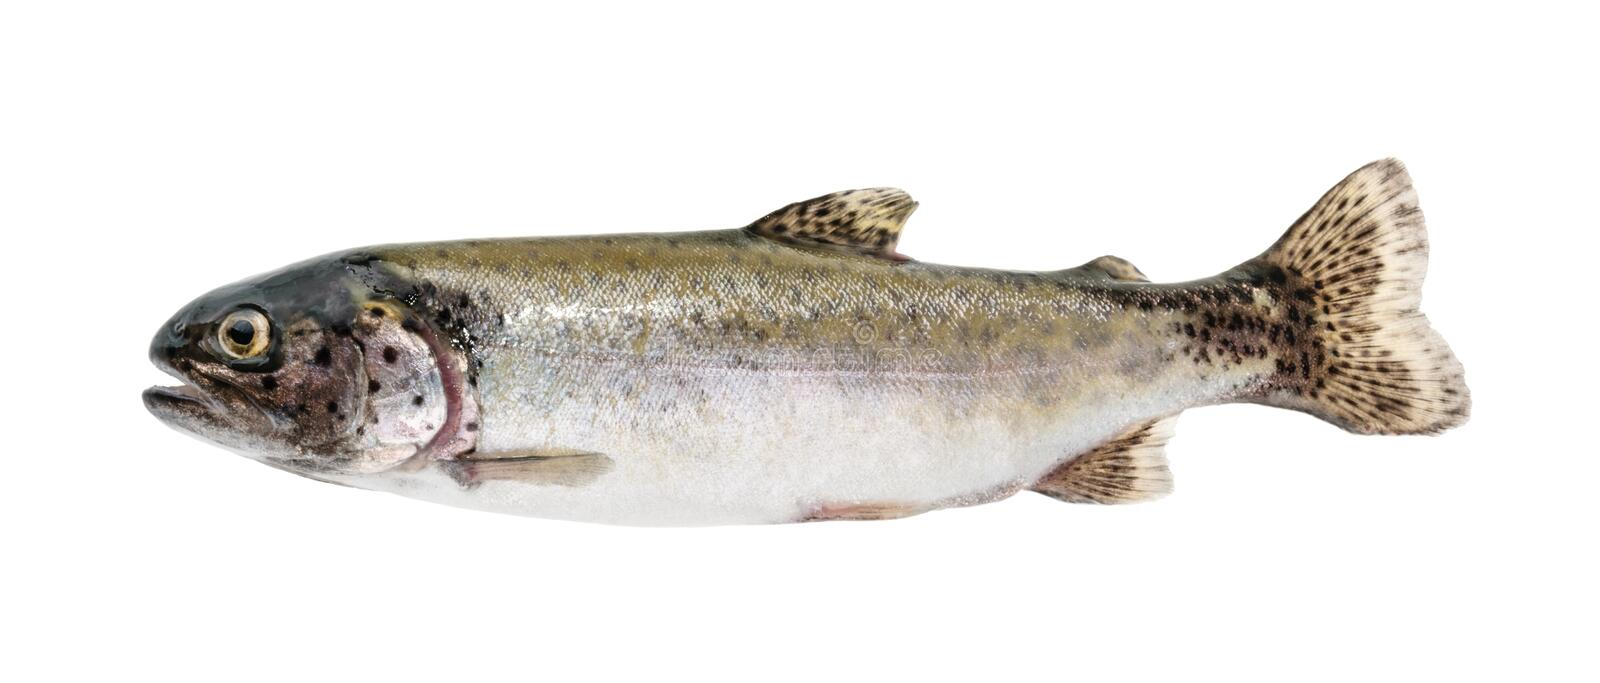 Trout fish isolated on white without shadow royalty free stock photos